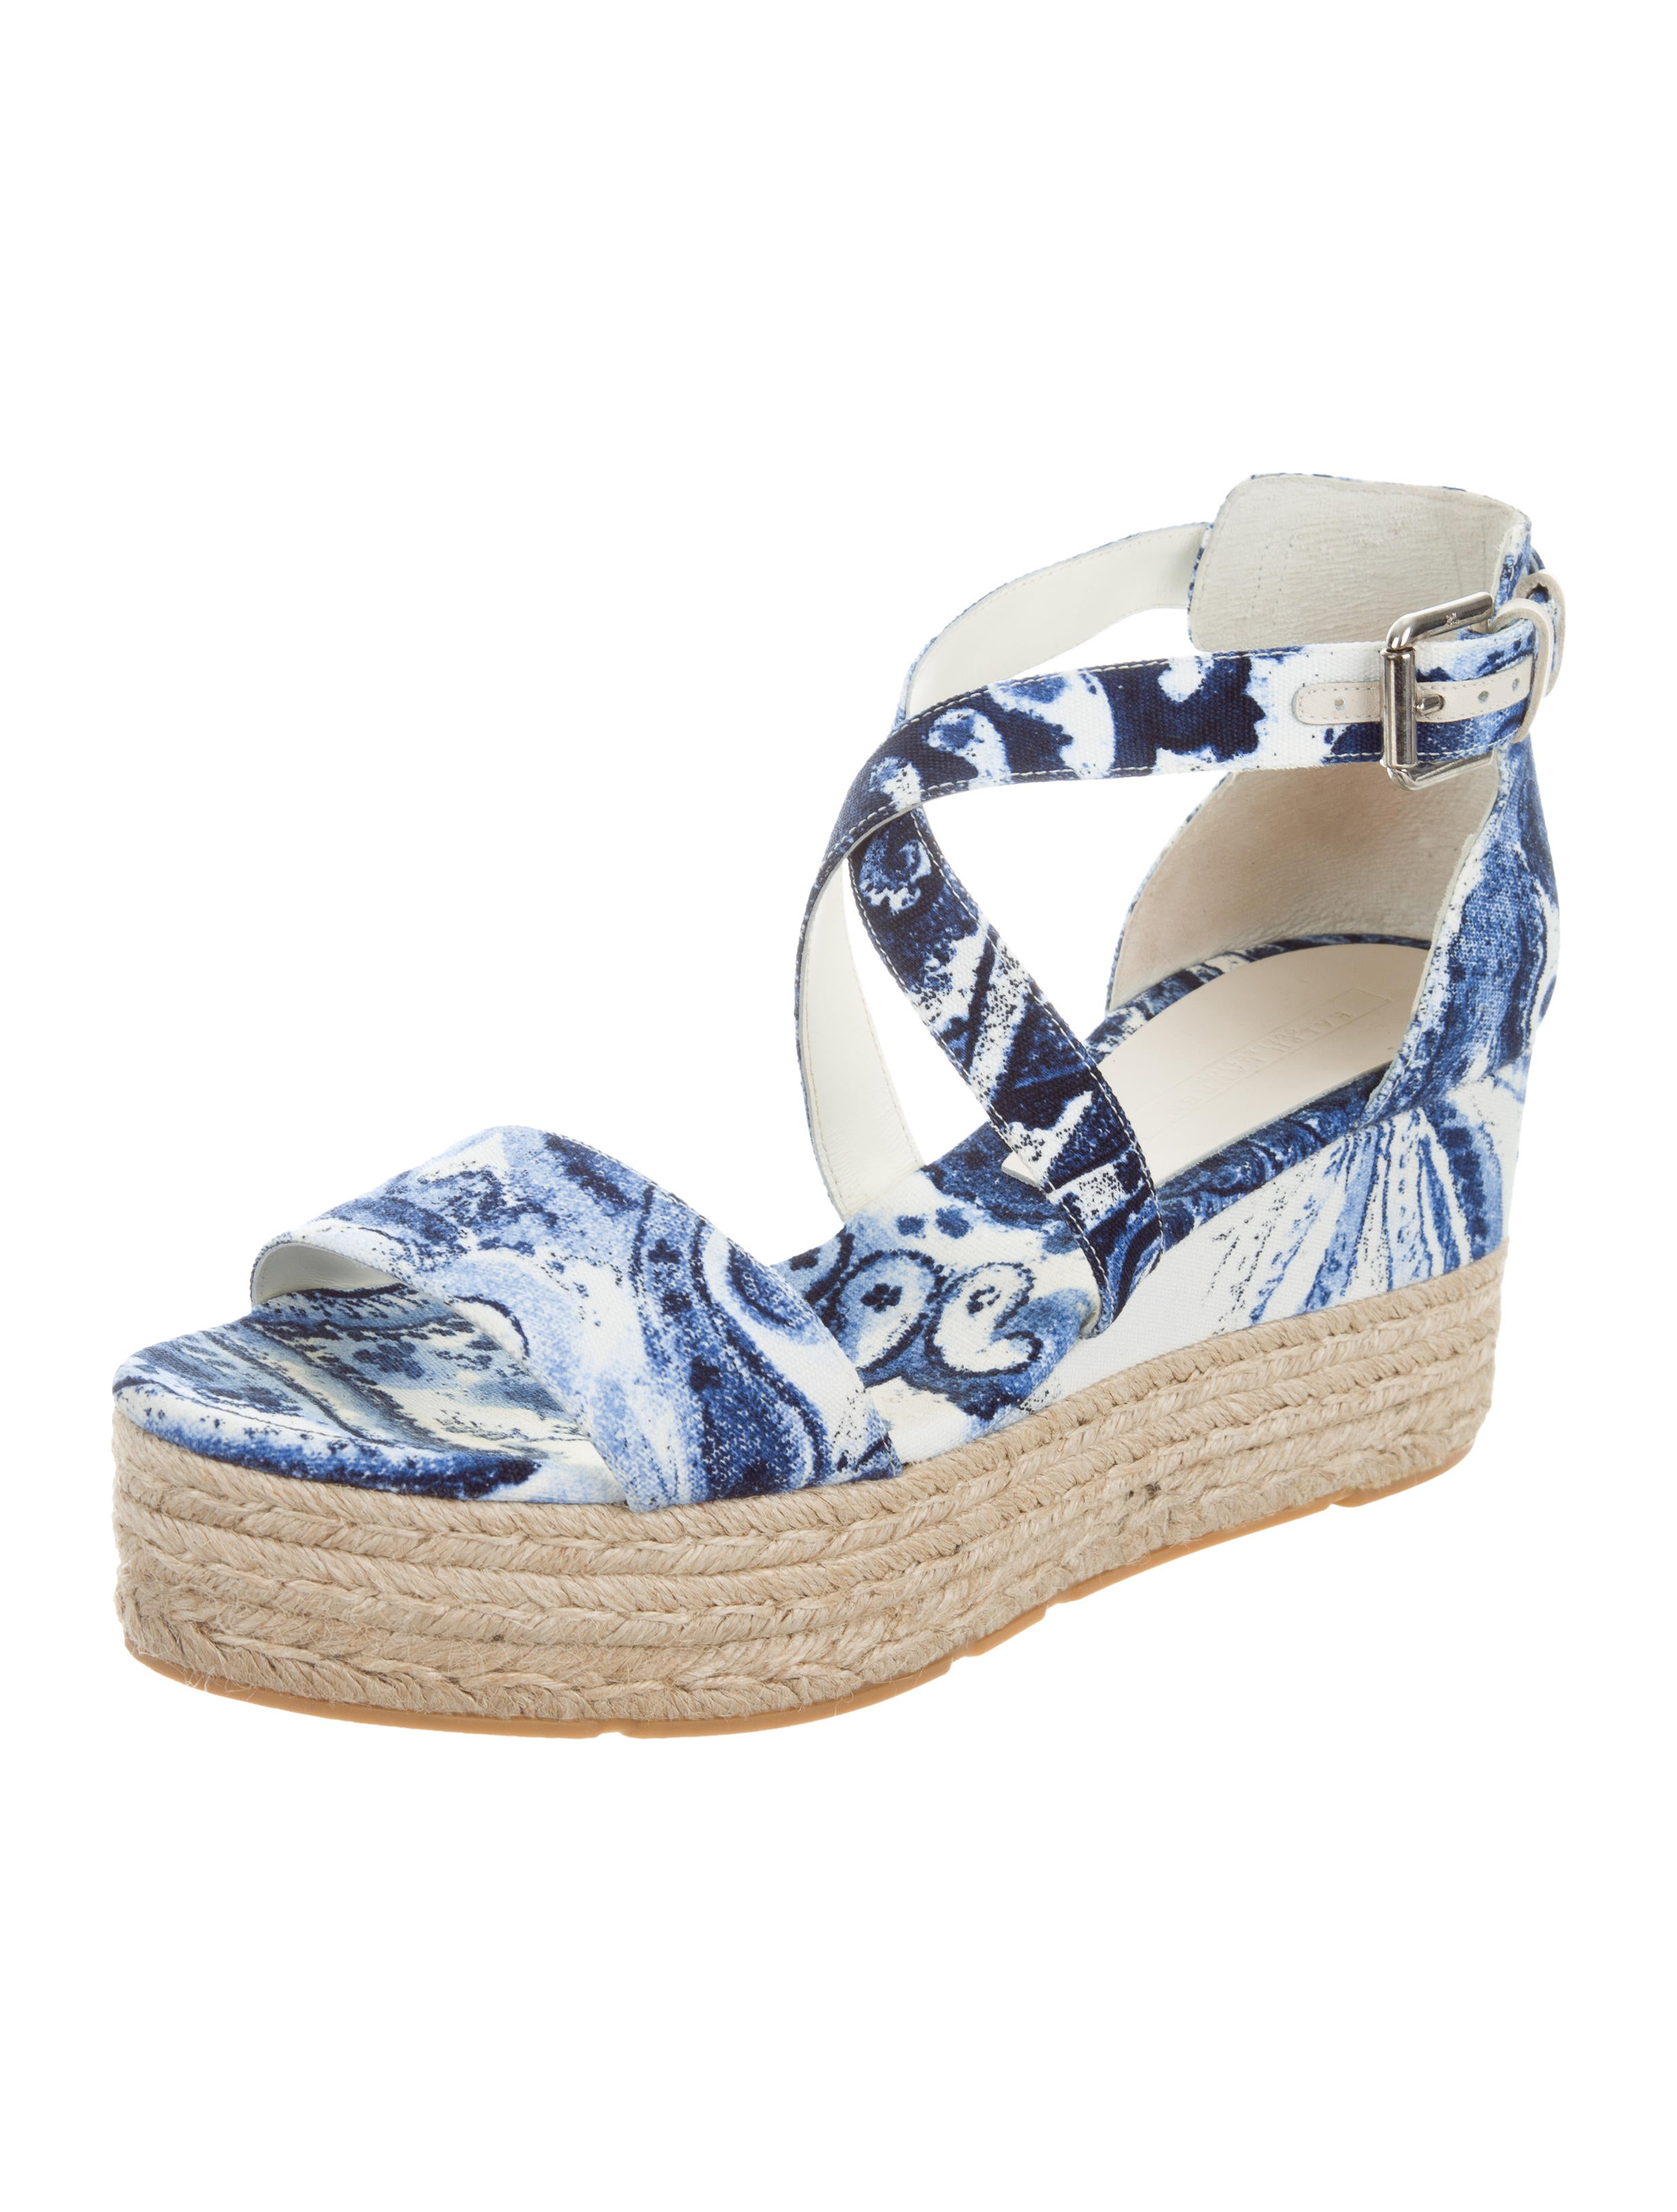 ralph lauren collection espadrille wedge sandals shoes ral21624 the realreal. Black Bedroom Furniture Sets. Home Design Ideas